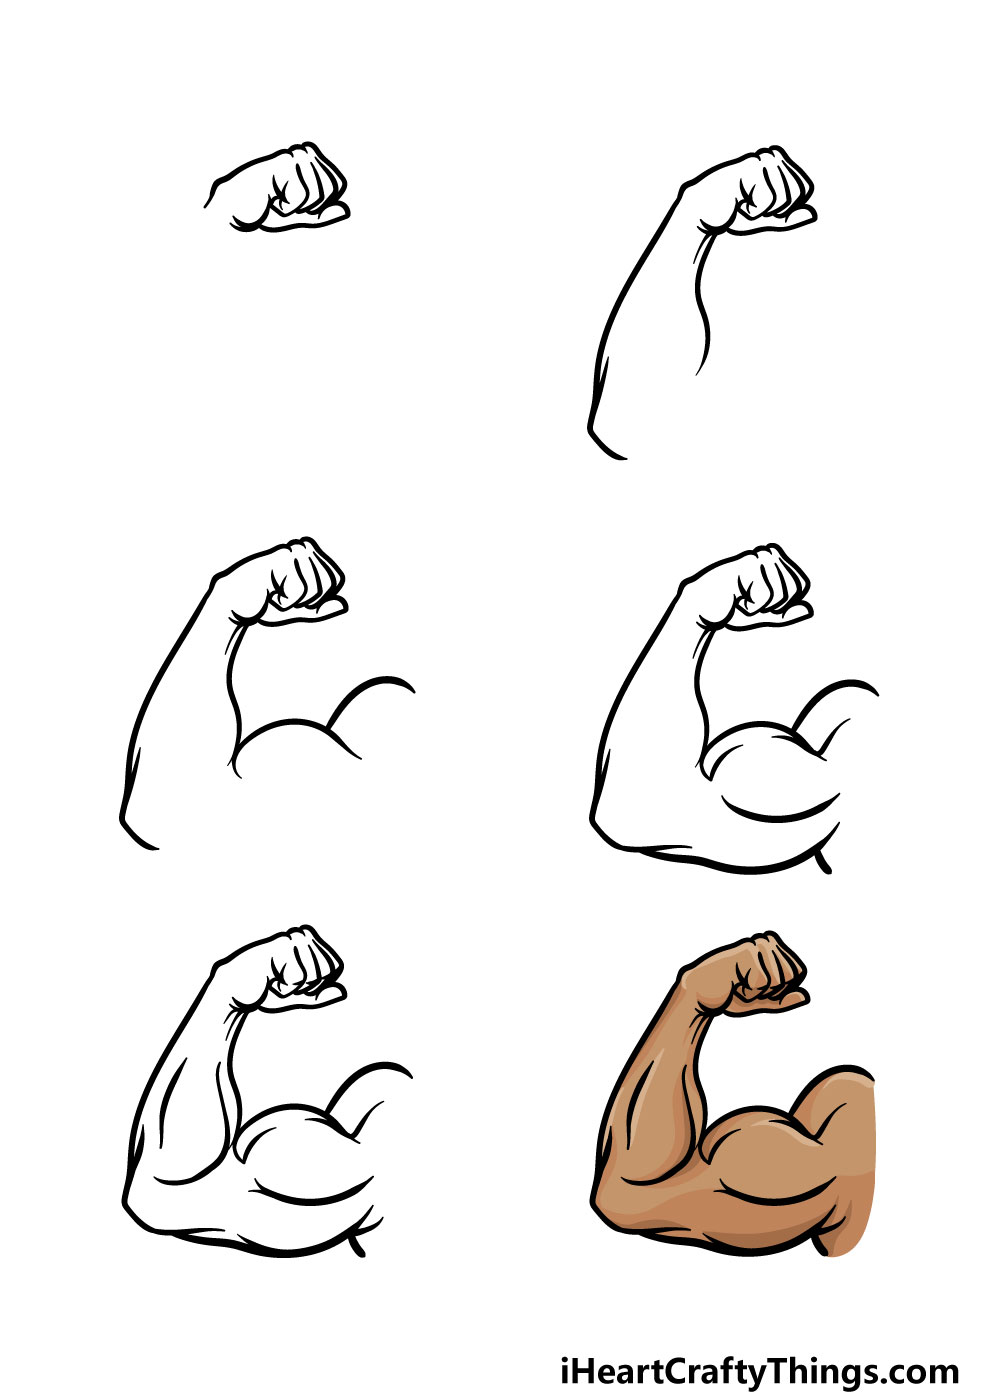 how to draw a muscular arm in 6 steps